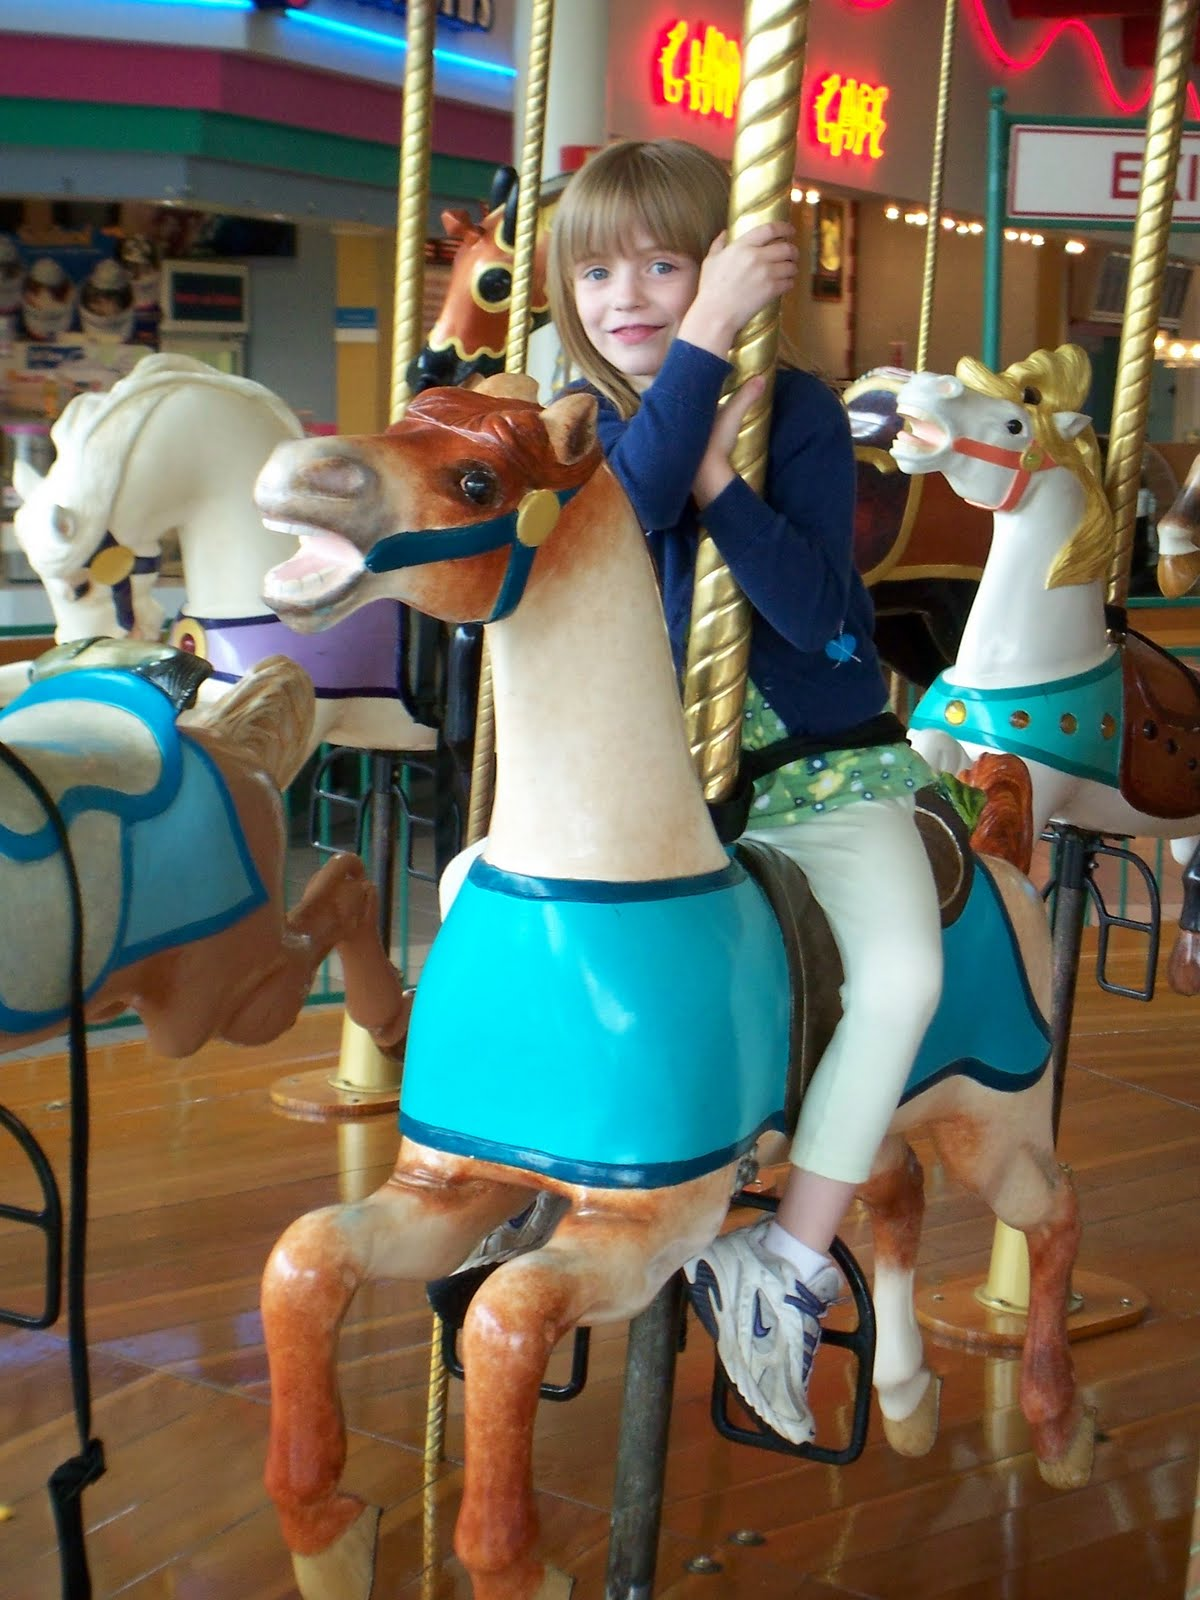 Had Asked The Carousel Attendant Tyler Was Familiar With